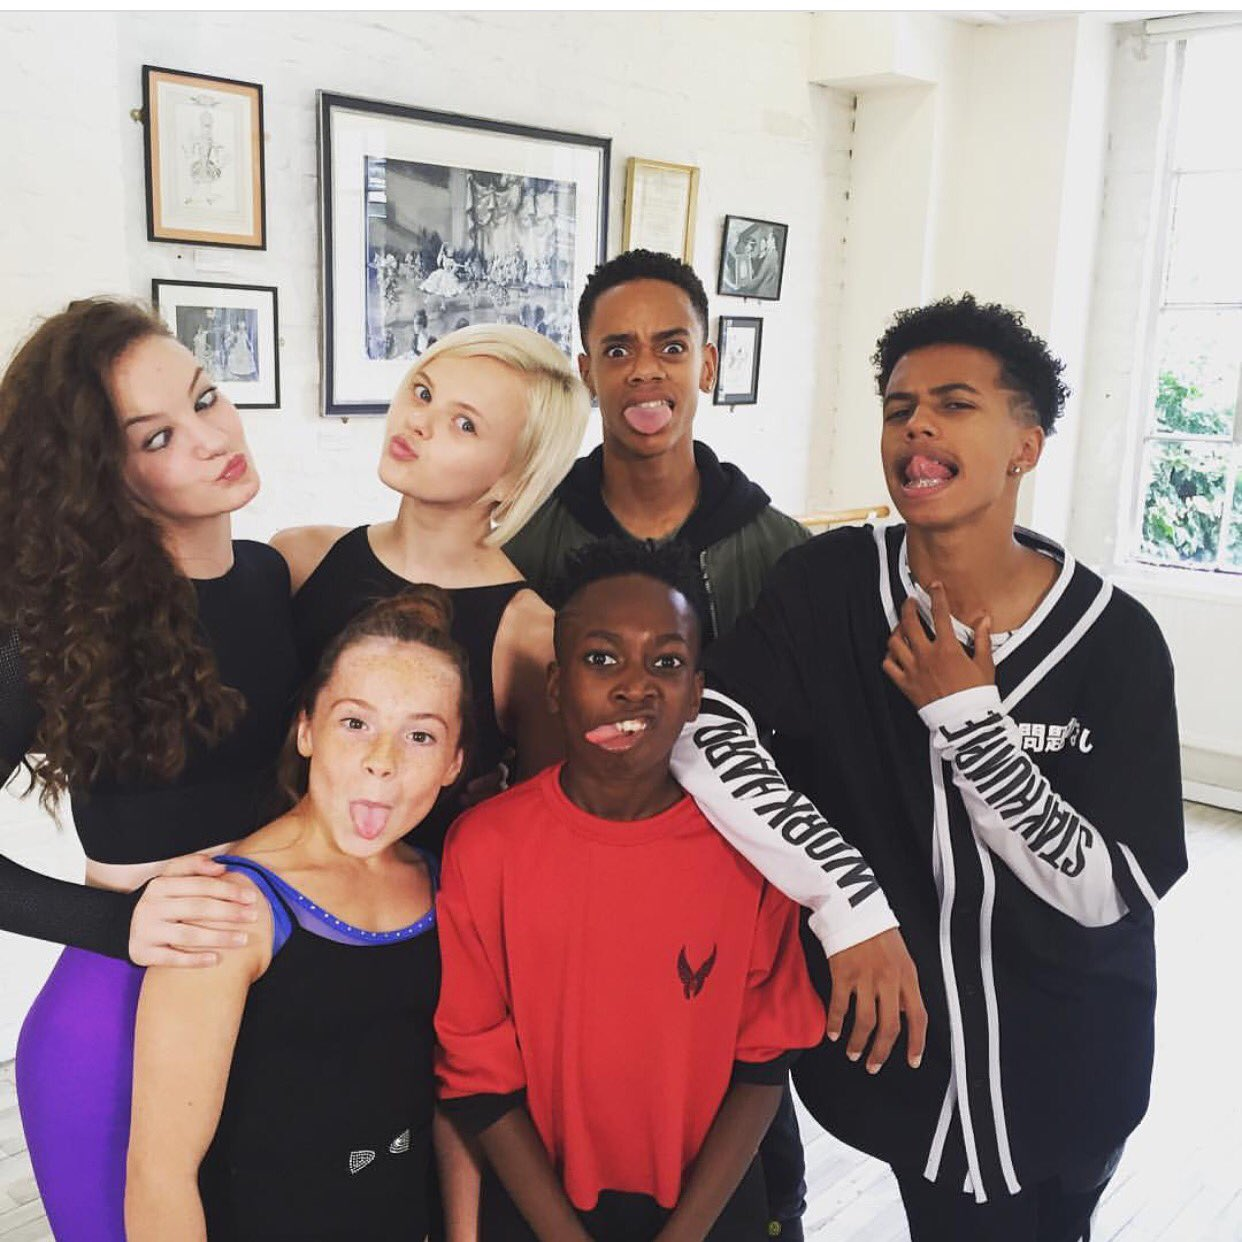 Watch my @WellFit123 dance crew on @SkyGameChangers at 5pm TODAY!!! https://t.co/OWk2ts0wmx